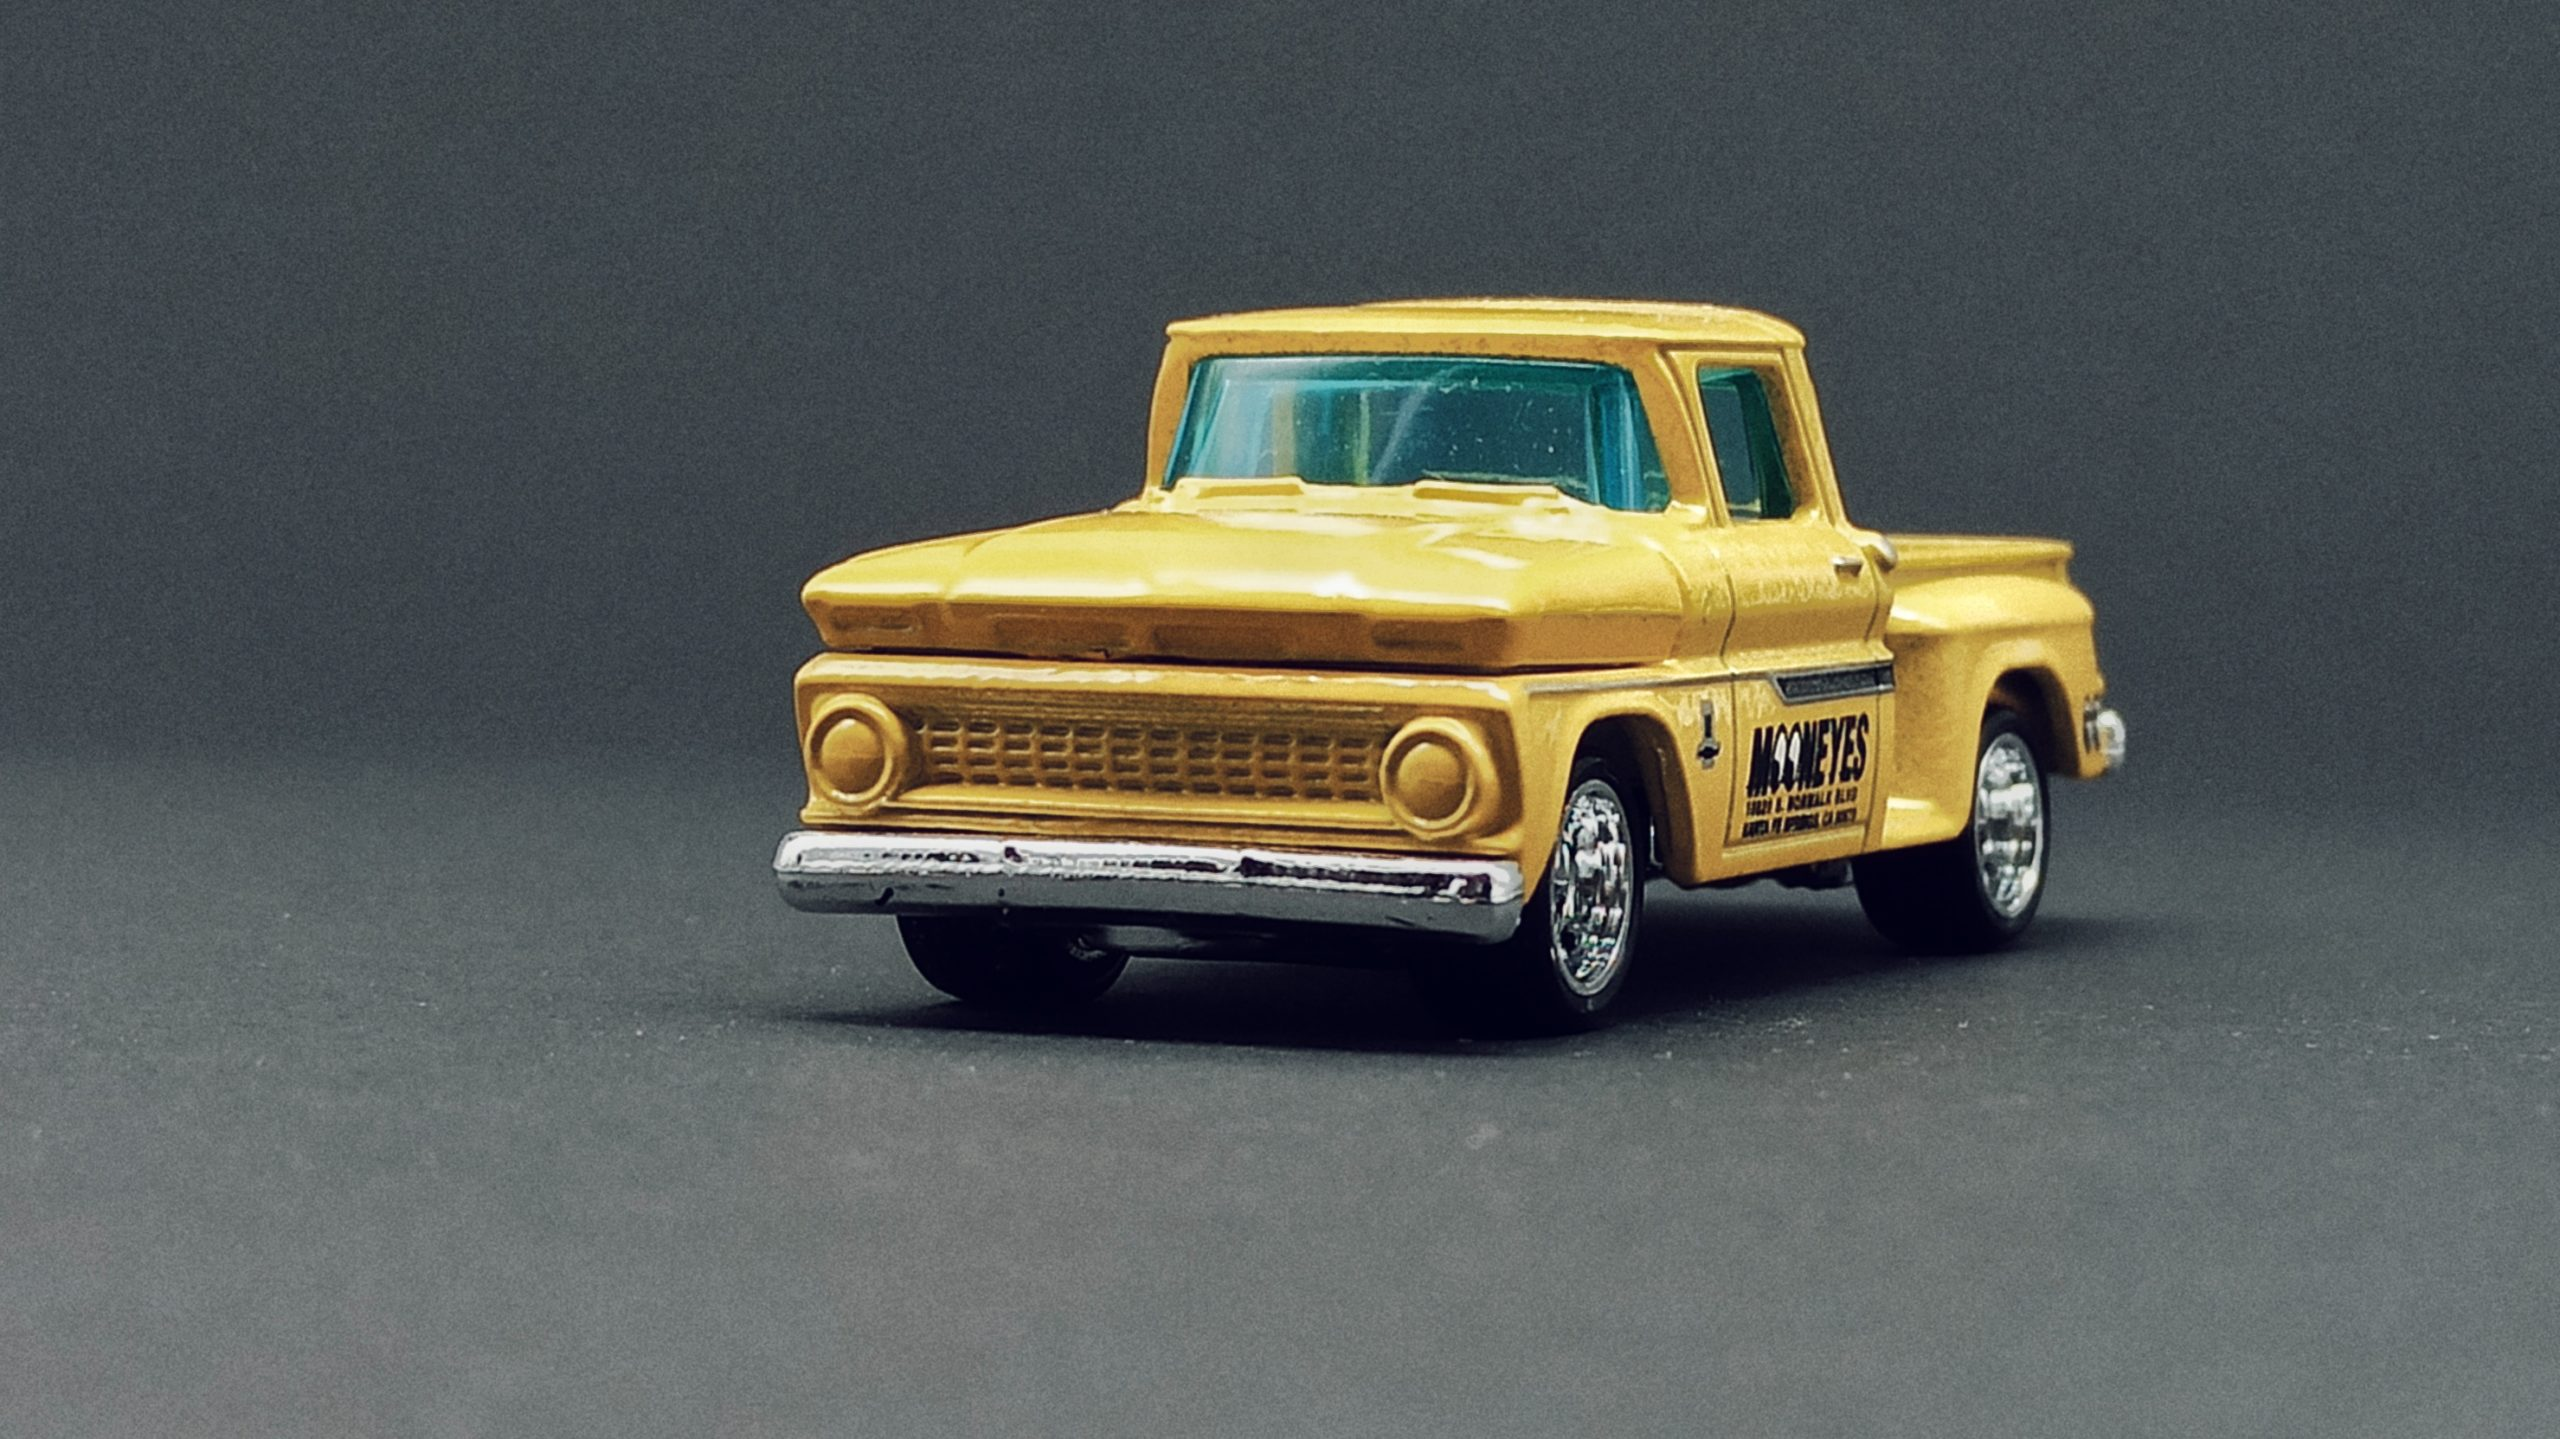 Matchbox Collectors Series '63 Chevy C10 Pickup Truck 1963 (GRK24) 2021 (3/20) yellow (Mooneyes) front angle